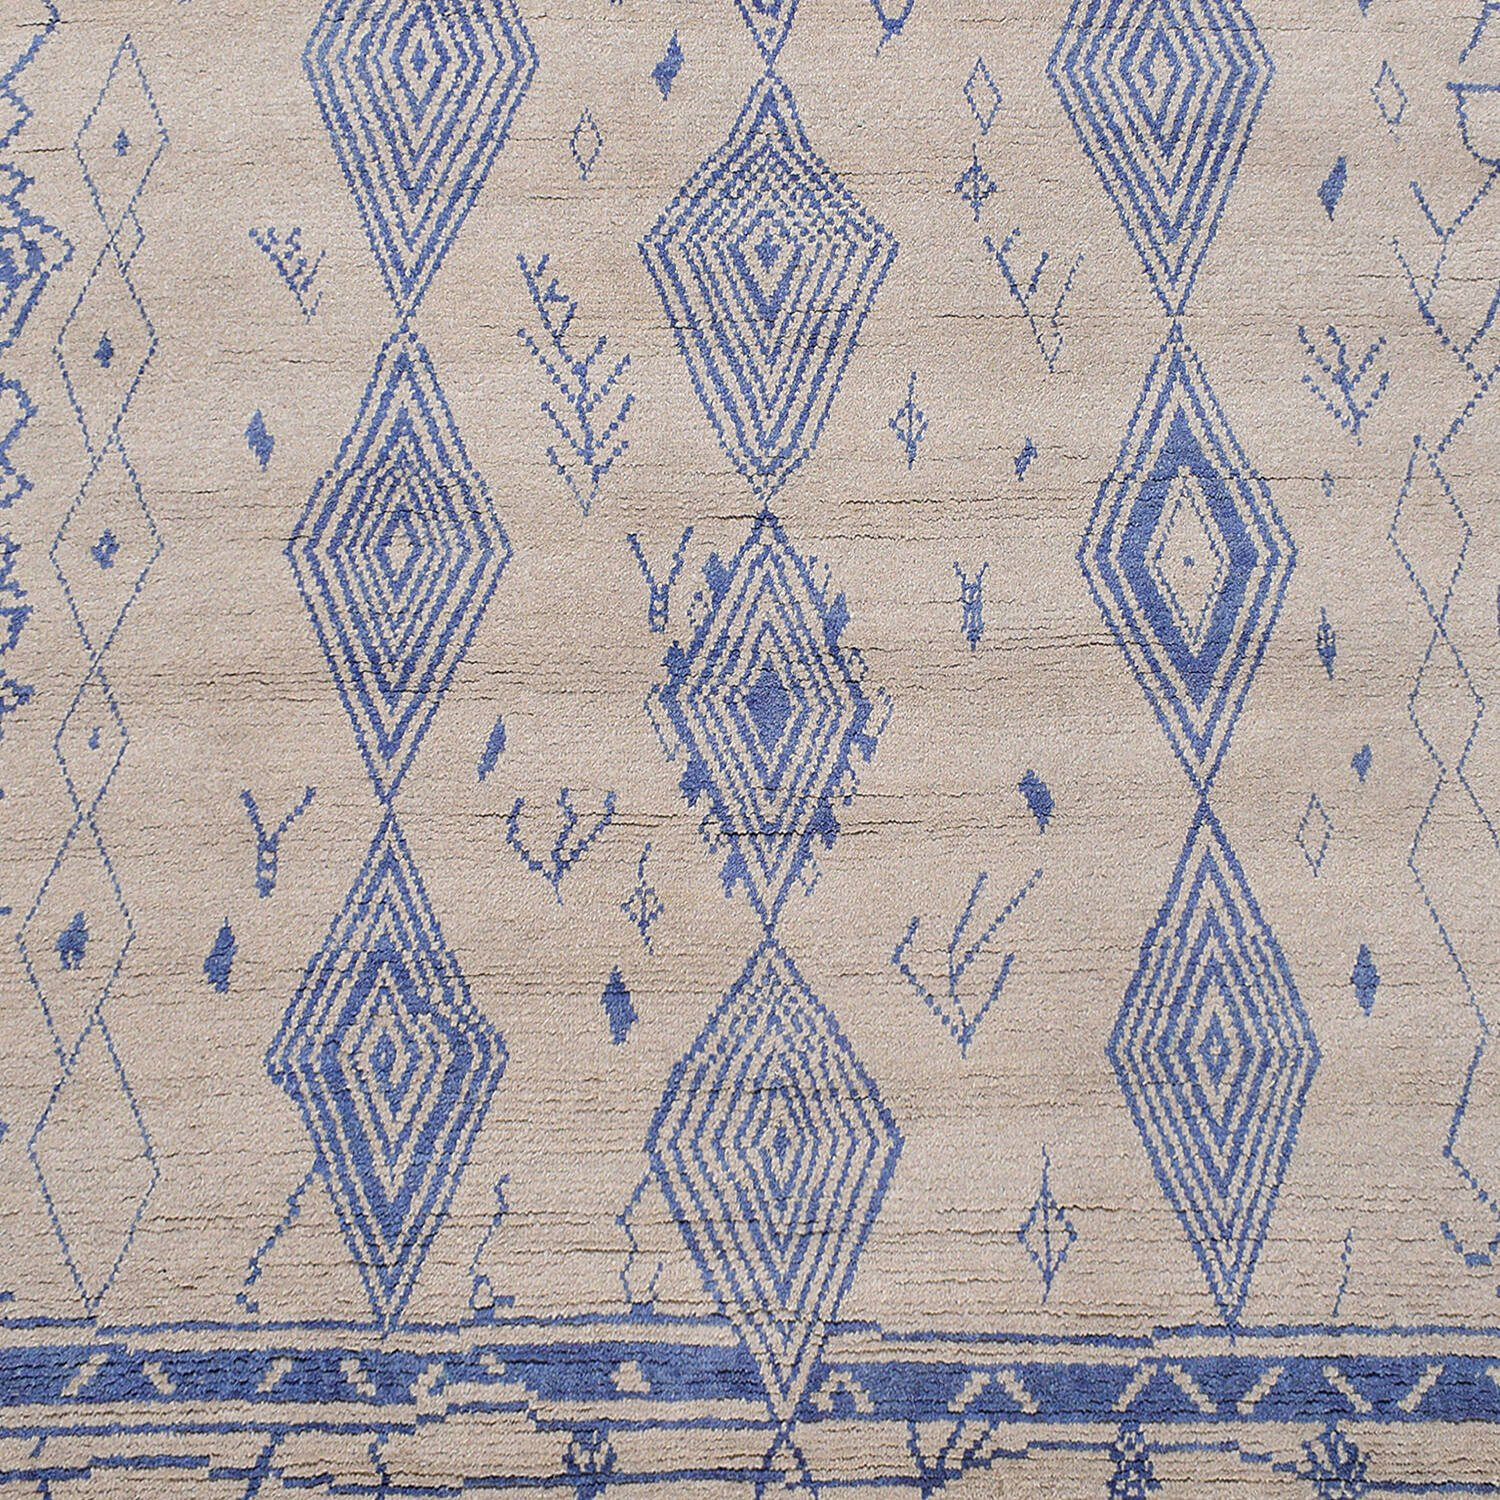 Tribal South-Western Moroccan Area Rug 8x10 image 3